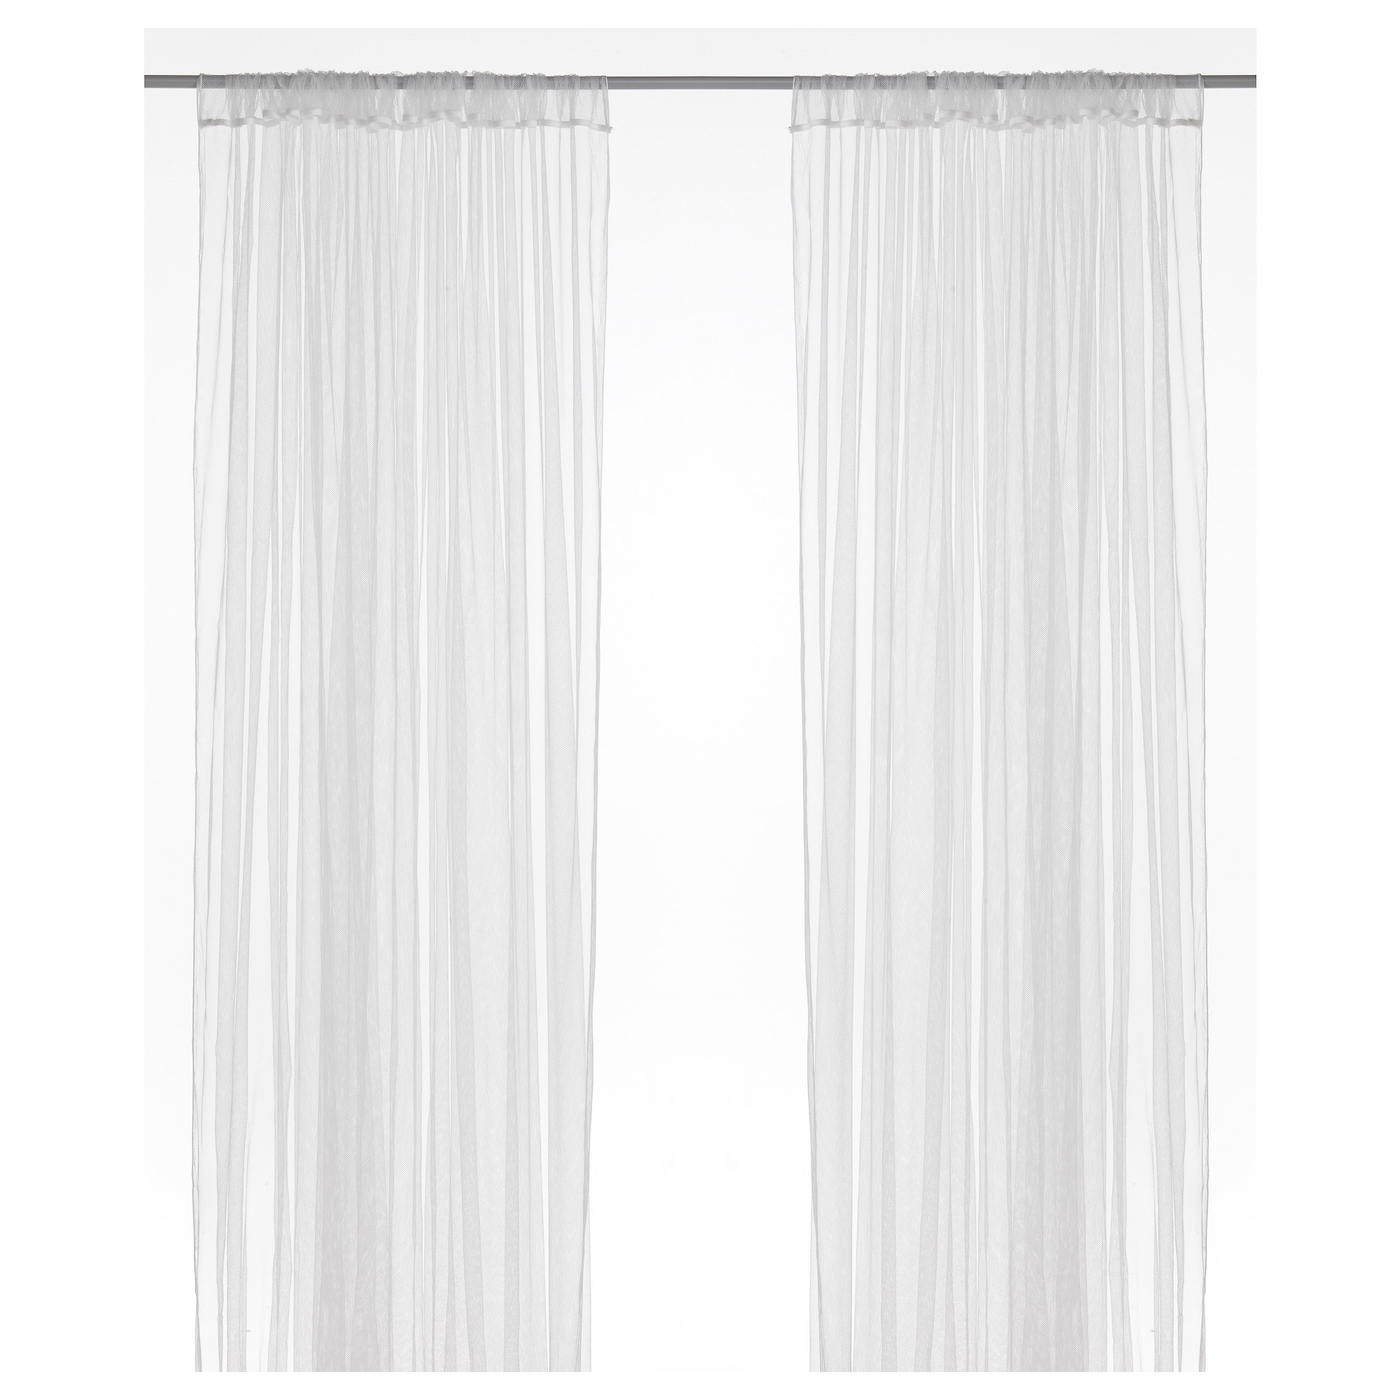 LILL Lace curtains, 1 pair - white - IKEA